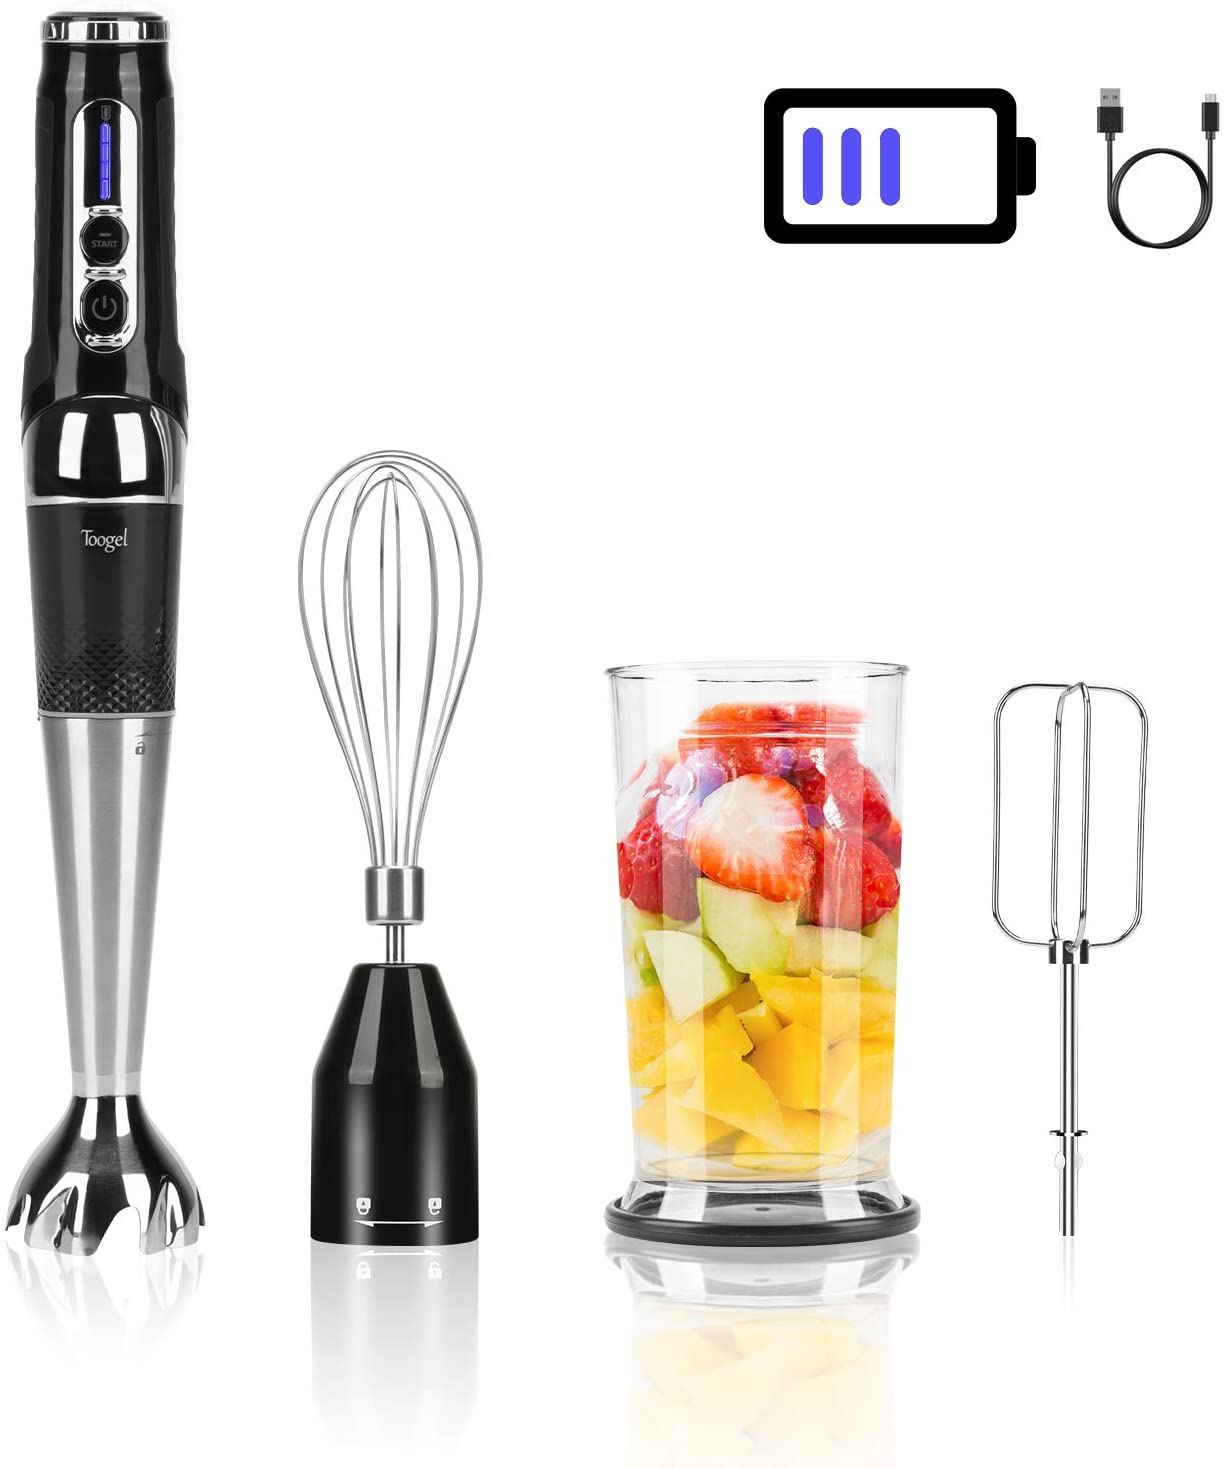 Cordless Hand Blender Rechargeable, Powerful Immersion Stick Blender , Portable Electric Hand Mixer Variable Speed Control with 21-Speed